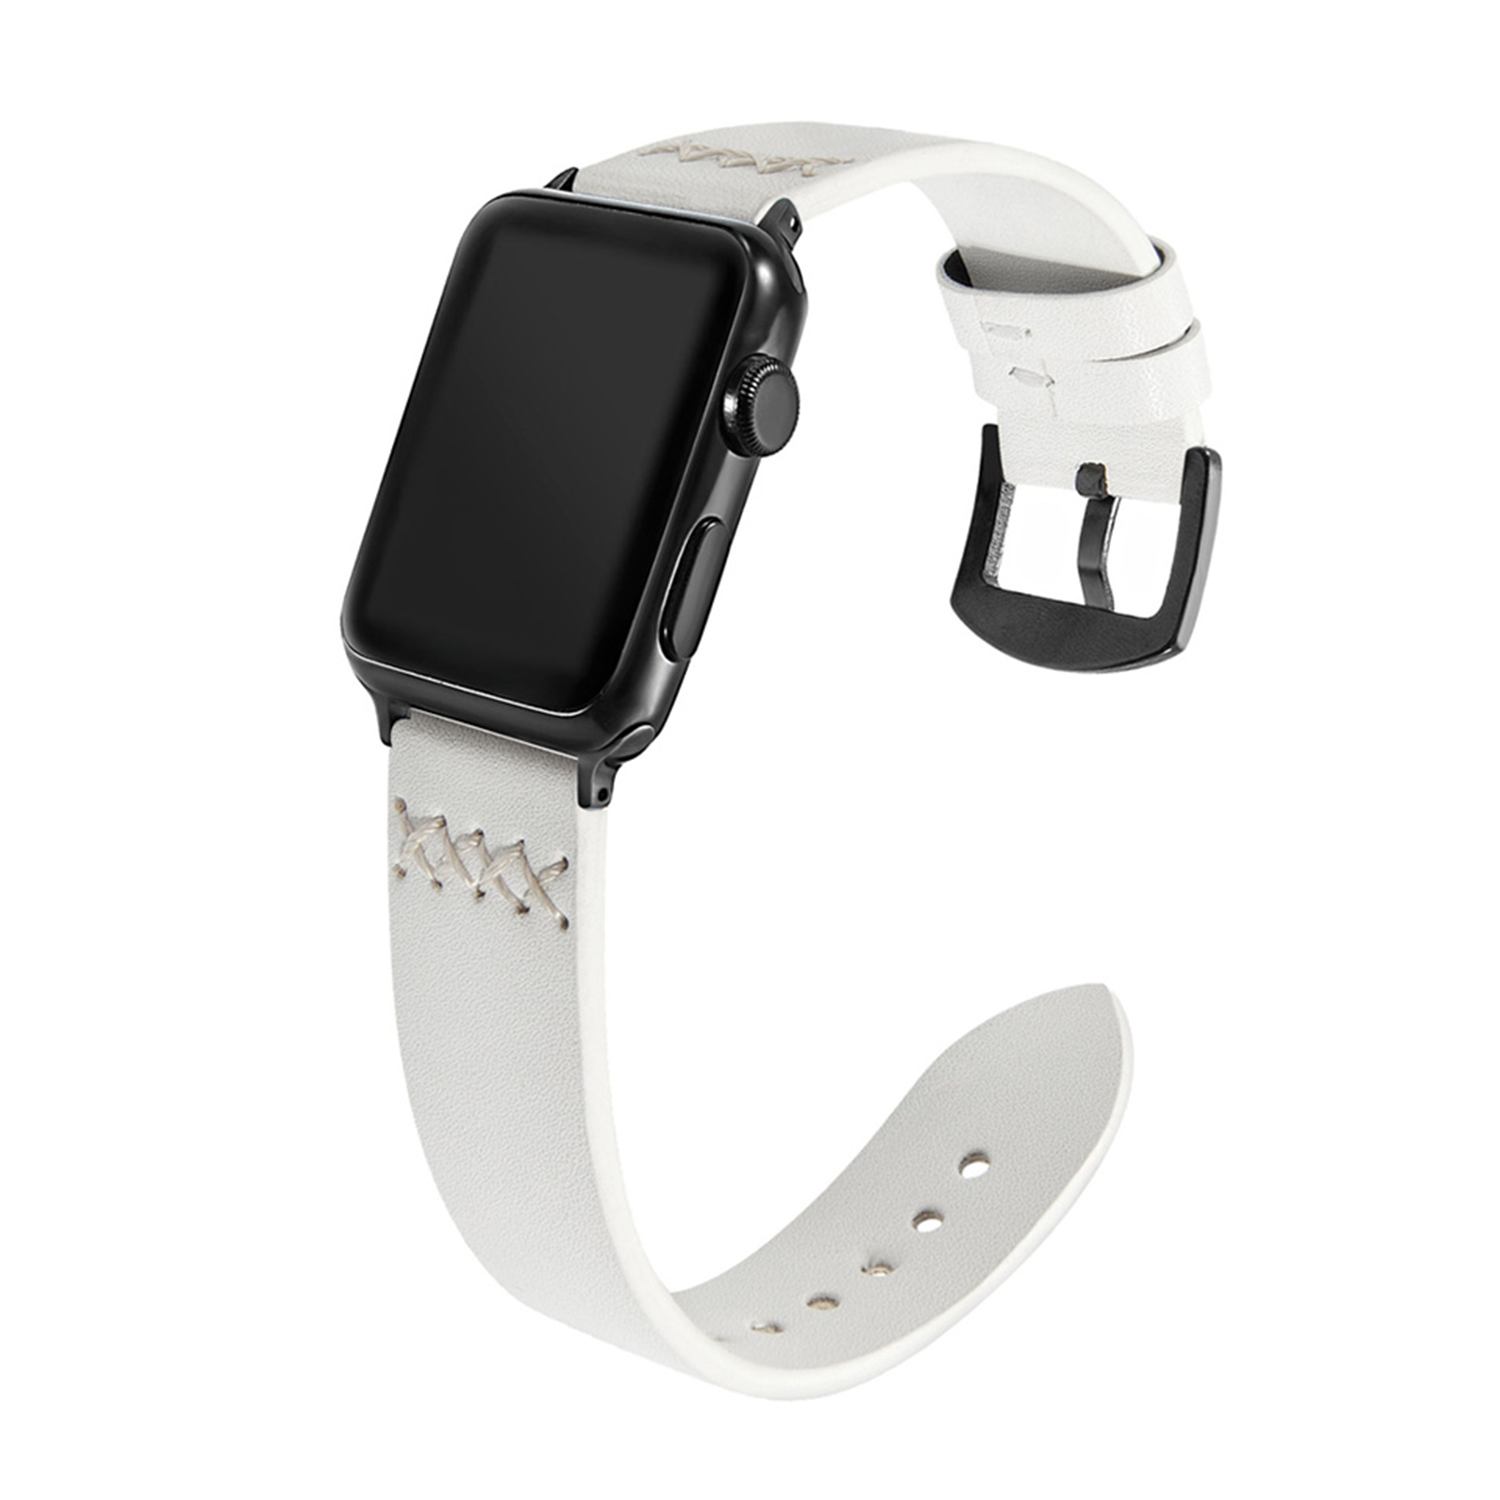 Hand-stitched Leather Strap for Apple Watch 42mm / 44mm - White